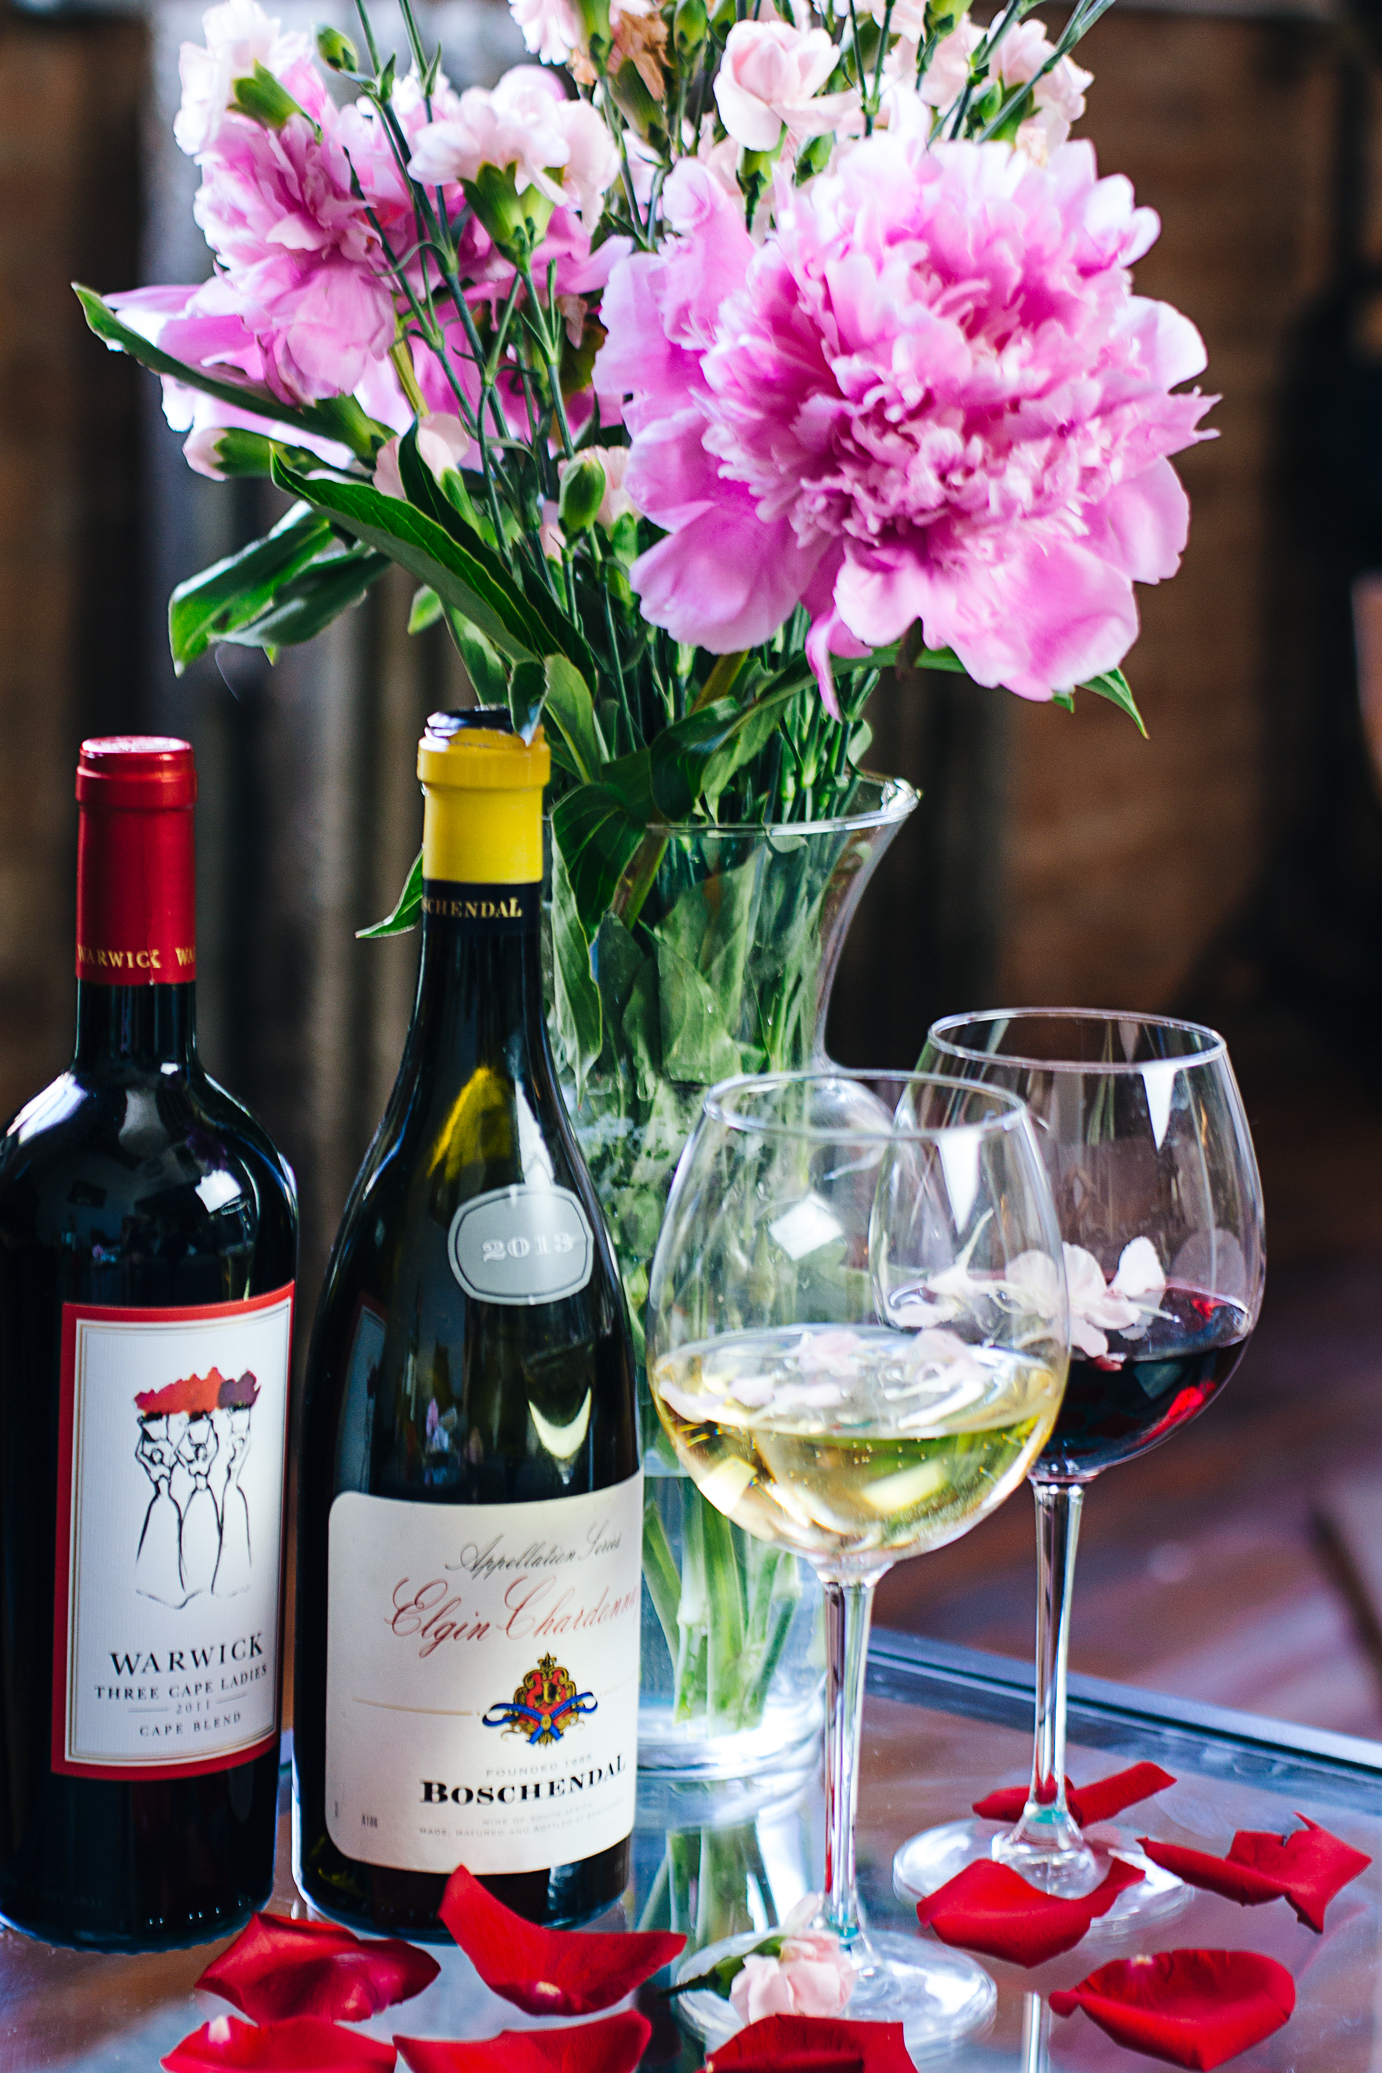 Mothers Day Flowers and Wine.jpg